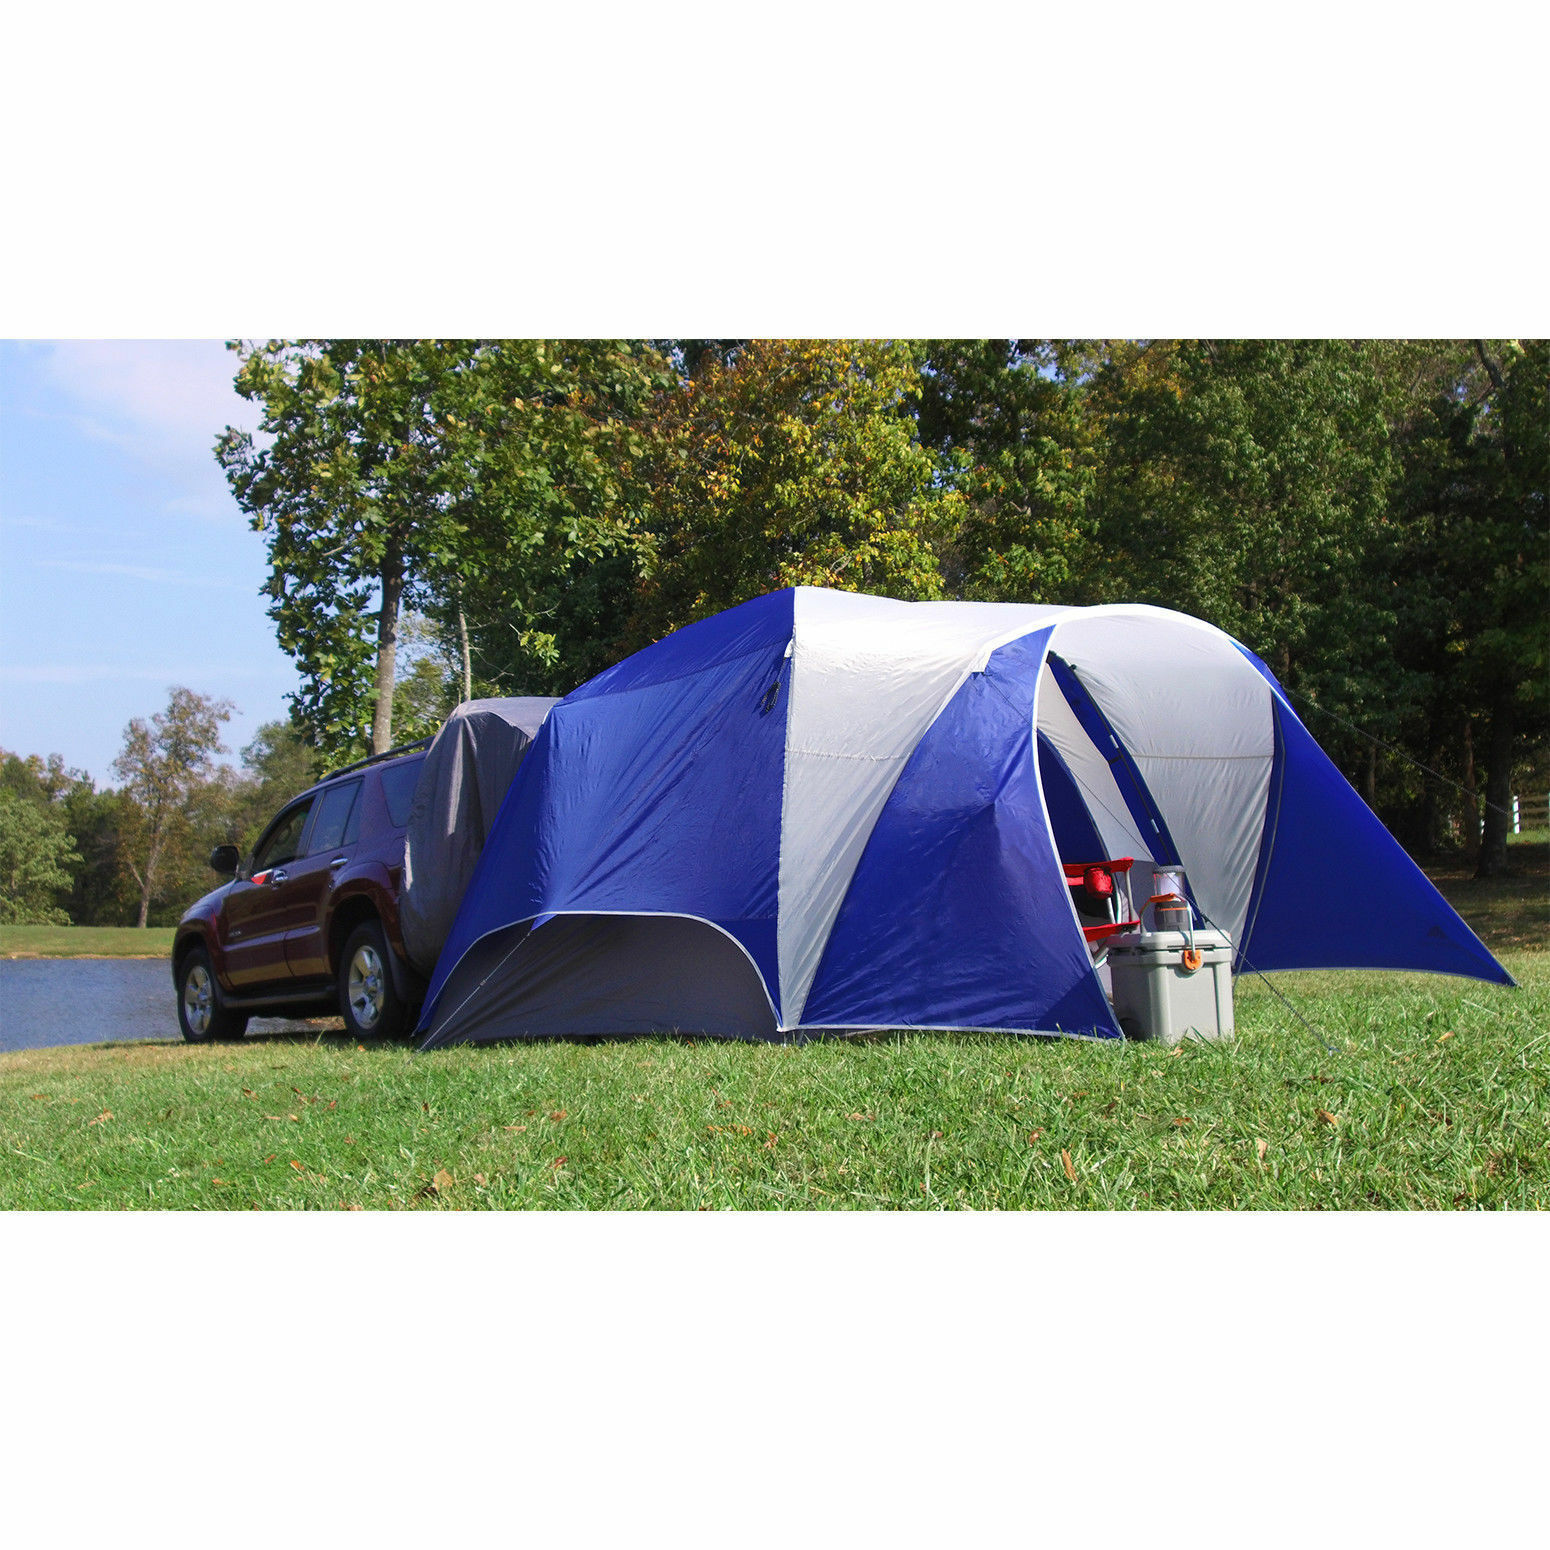 Ozark Trail 5-Person SUV Zelten Camp Hike Outdoor Car Auto Sleep Family Camping